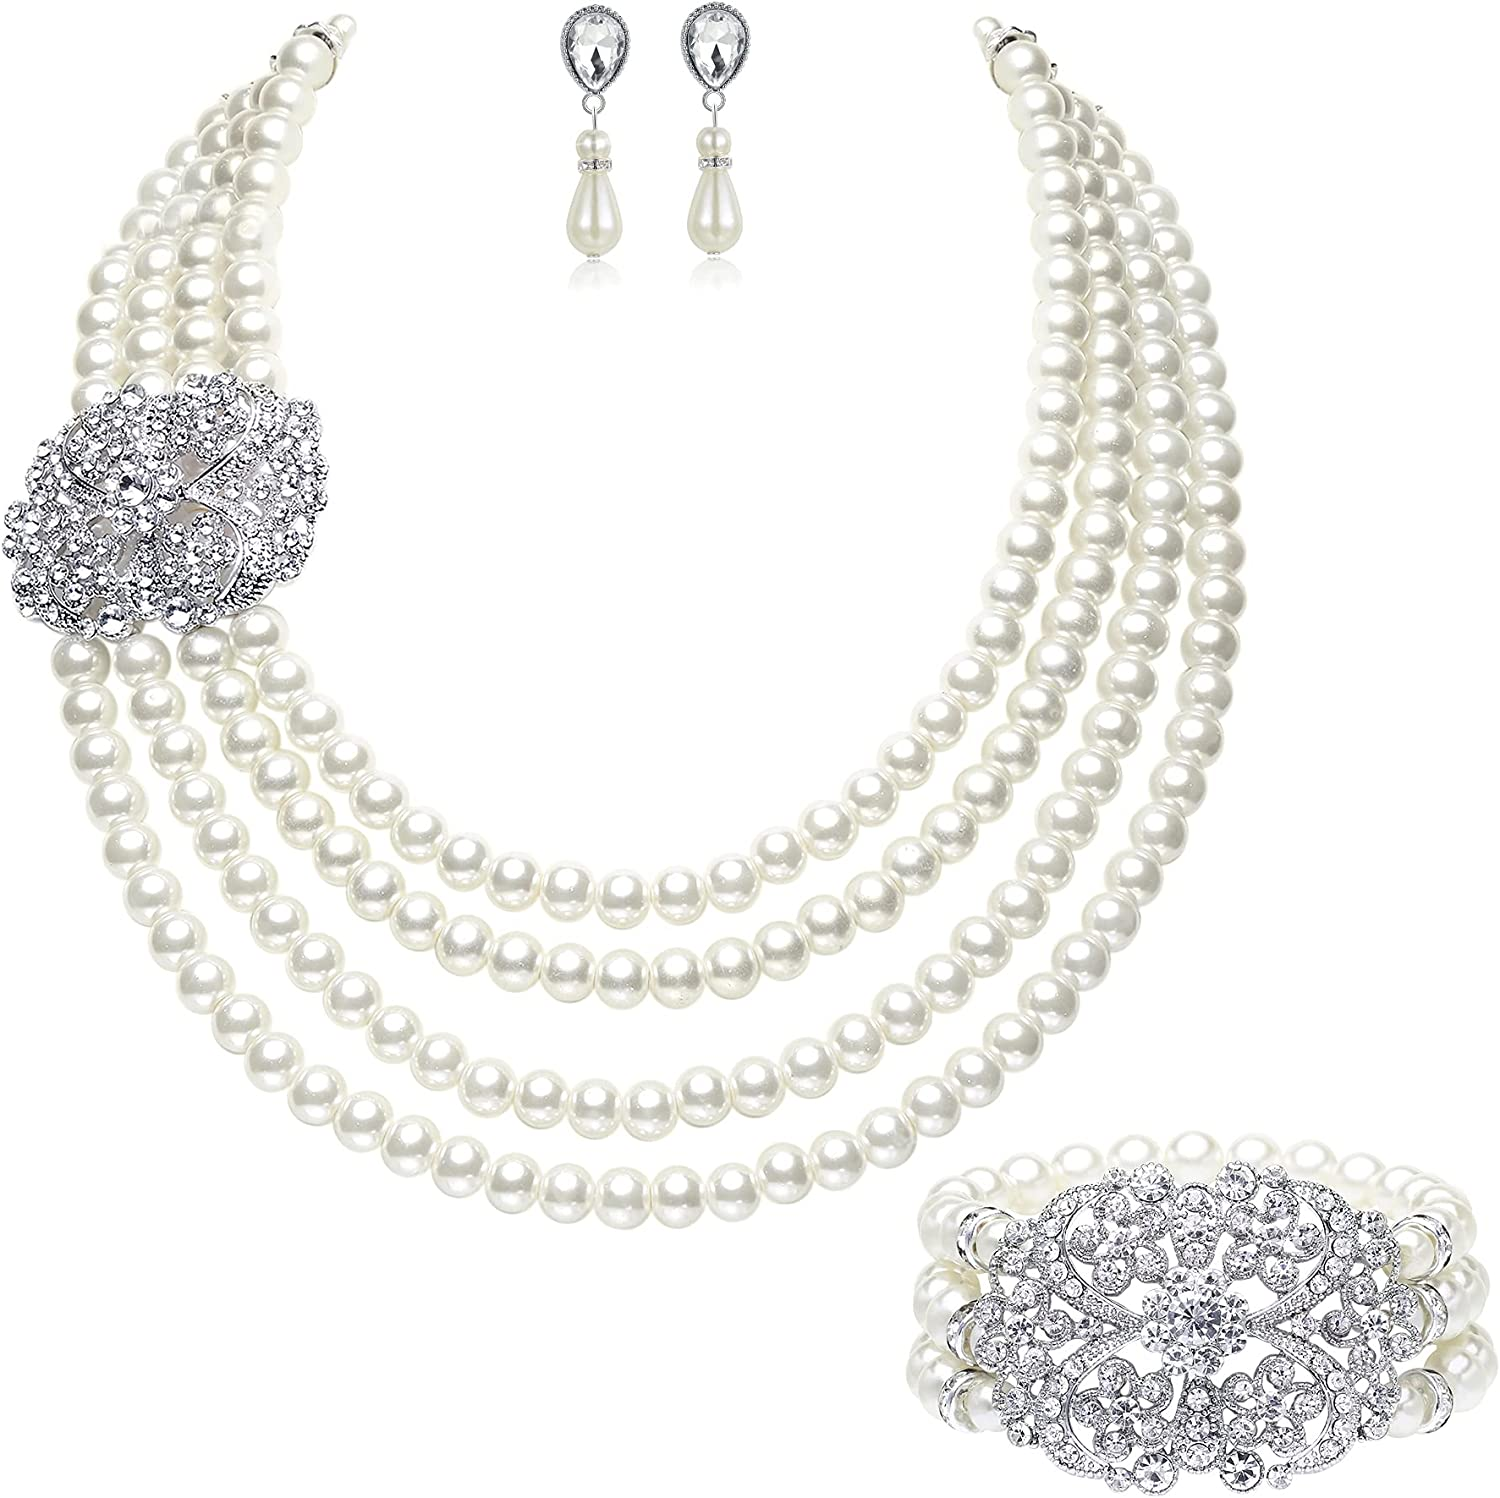 BABEYOND 1920s Gatsby Pearl Necklace Vintage Bridal Pearl Necklace Earrings Jewelry Set Multilayer Imitation Pearl Necklace with Brooch